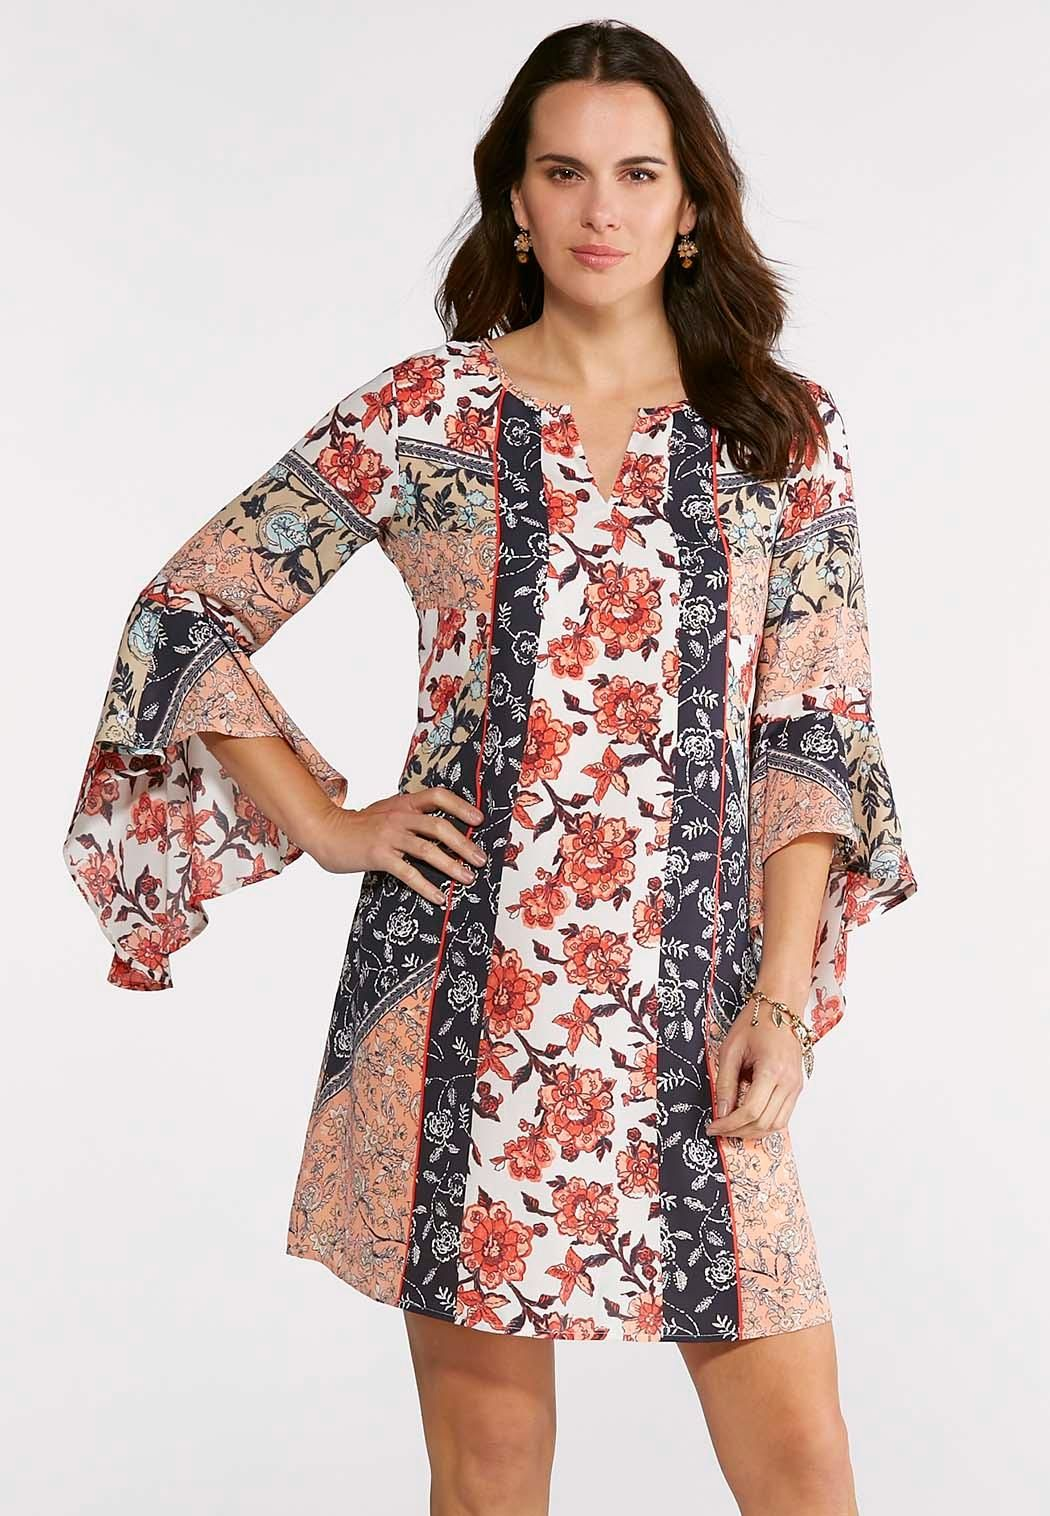 Plus Size Floral Patchwork Swing Dress A-line   Swing Cato Fashions ... a7dc66ce1